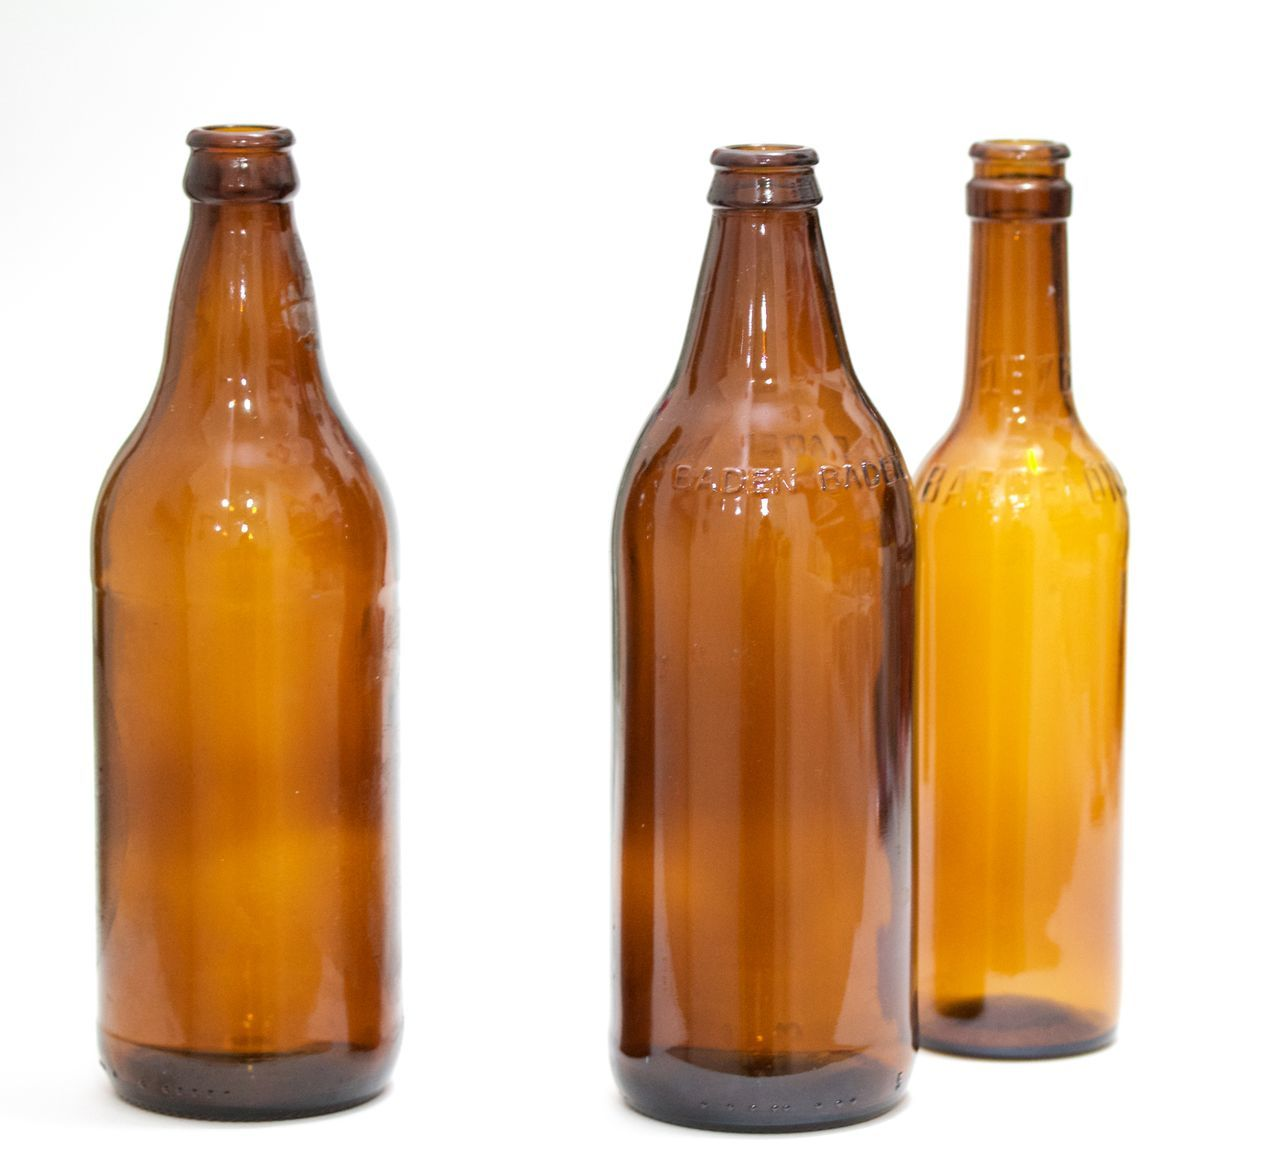 three brown bottles on white background Alcohol Beer Bottle Brown Bottles Close-up Food Food And Drink No People Studio Shot White Background